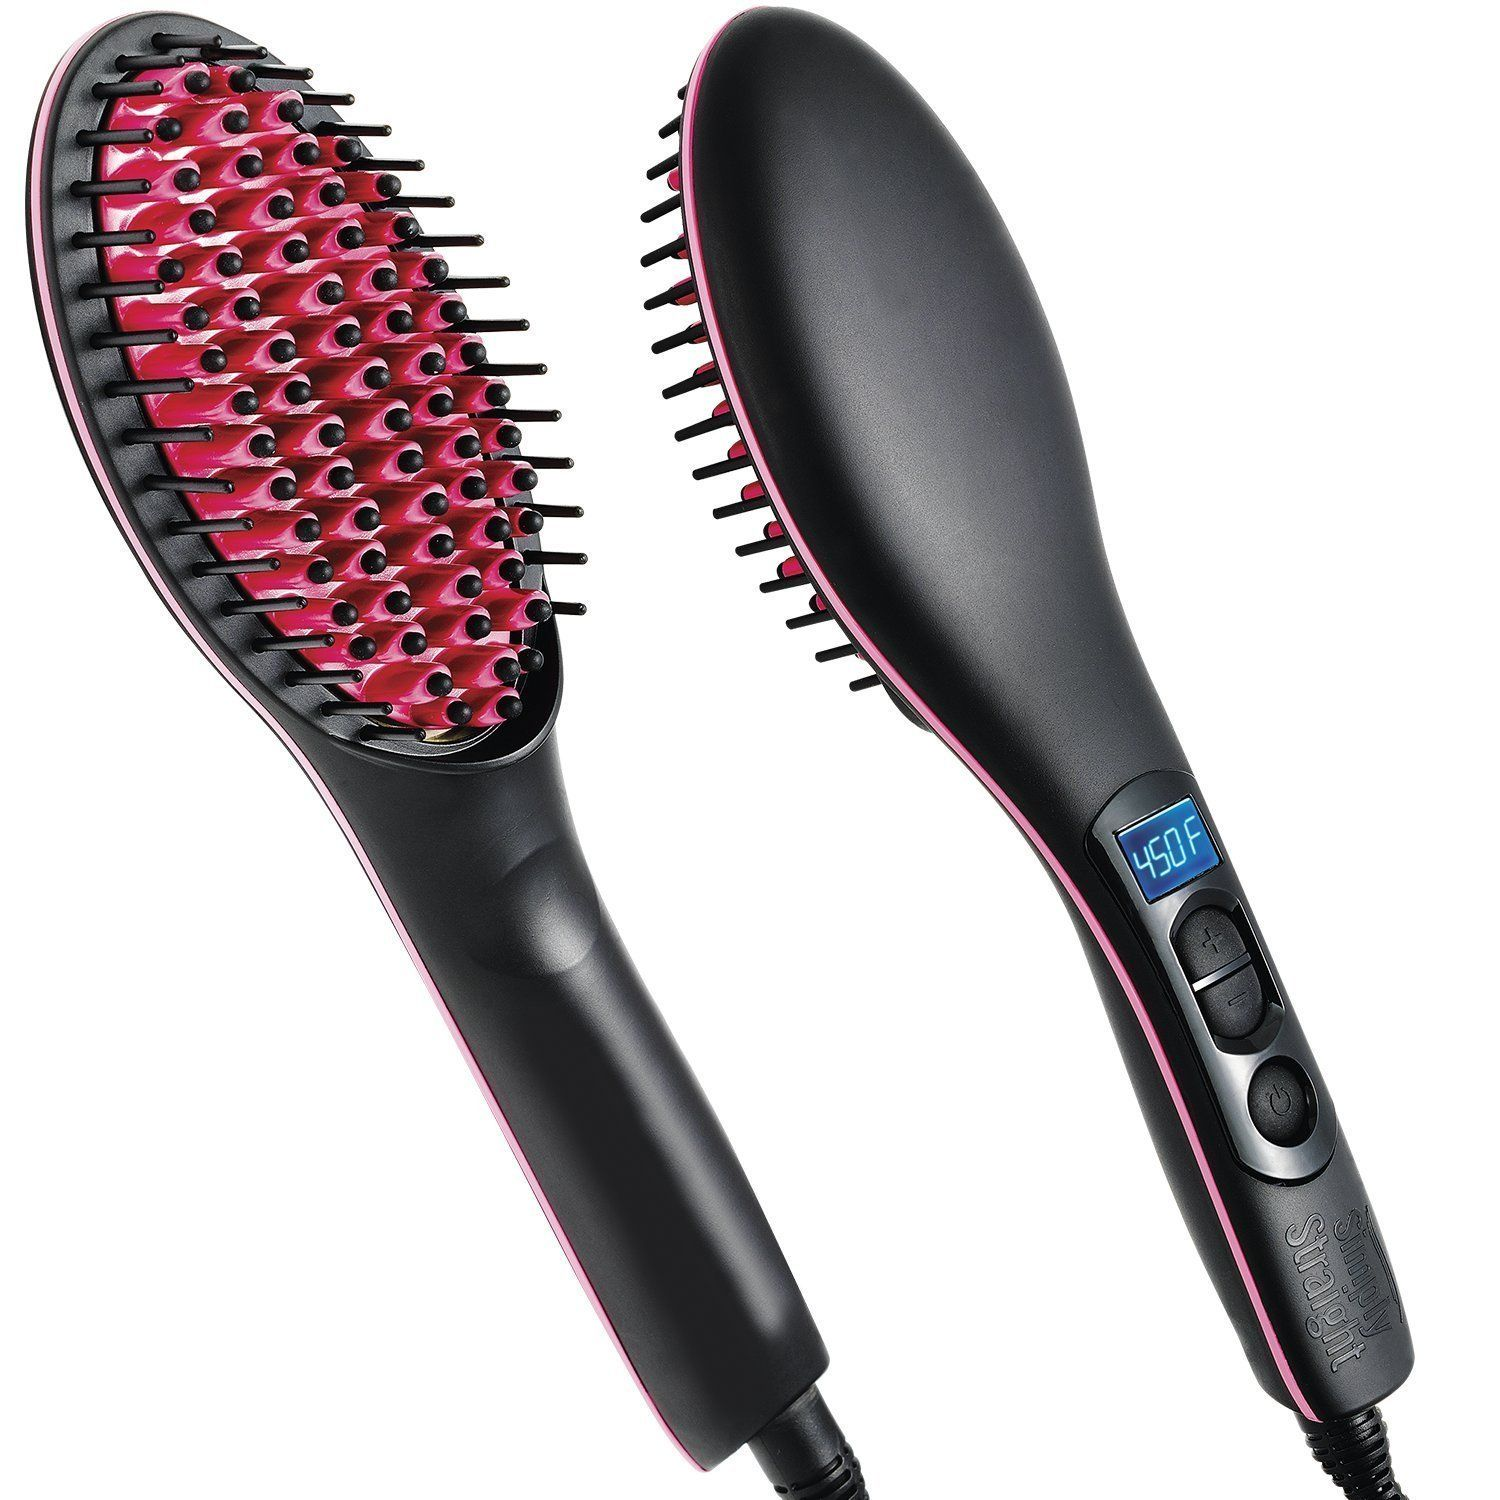 Bronson Professional Simply Straight / Straight Artifact Ceramic Hair Straightening Brush - Black / Pink